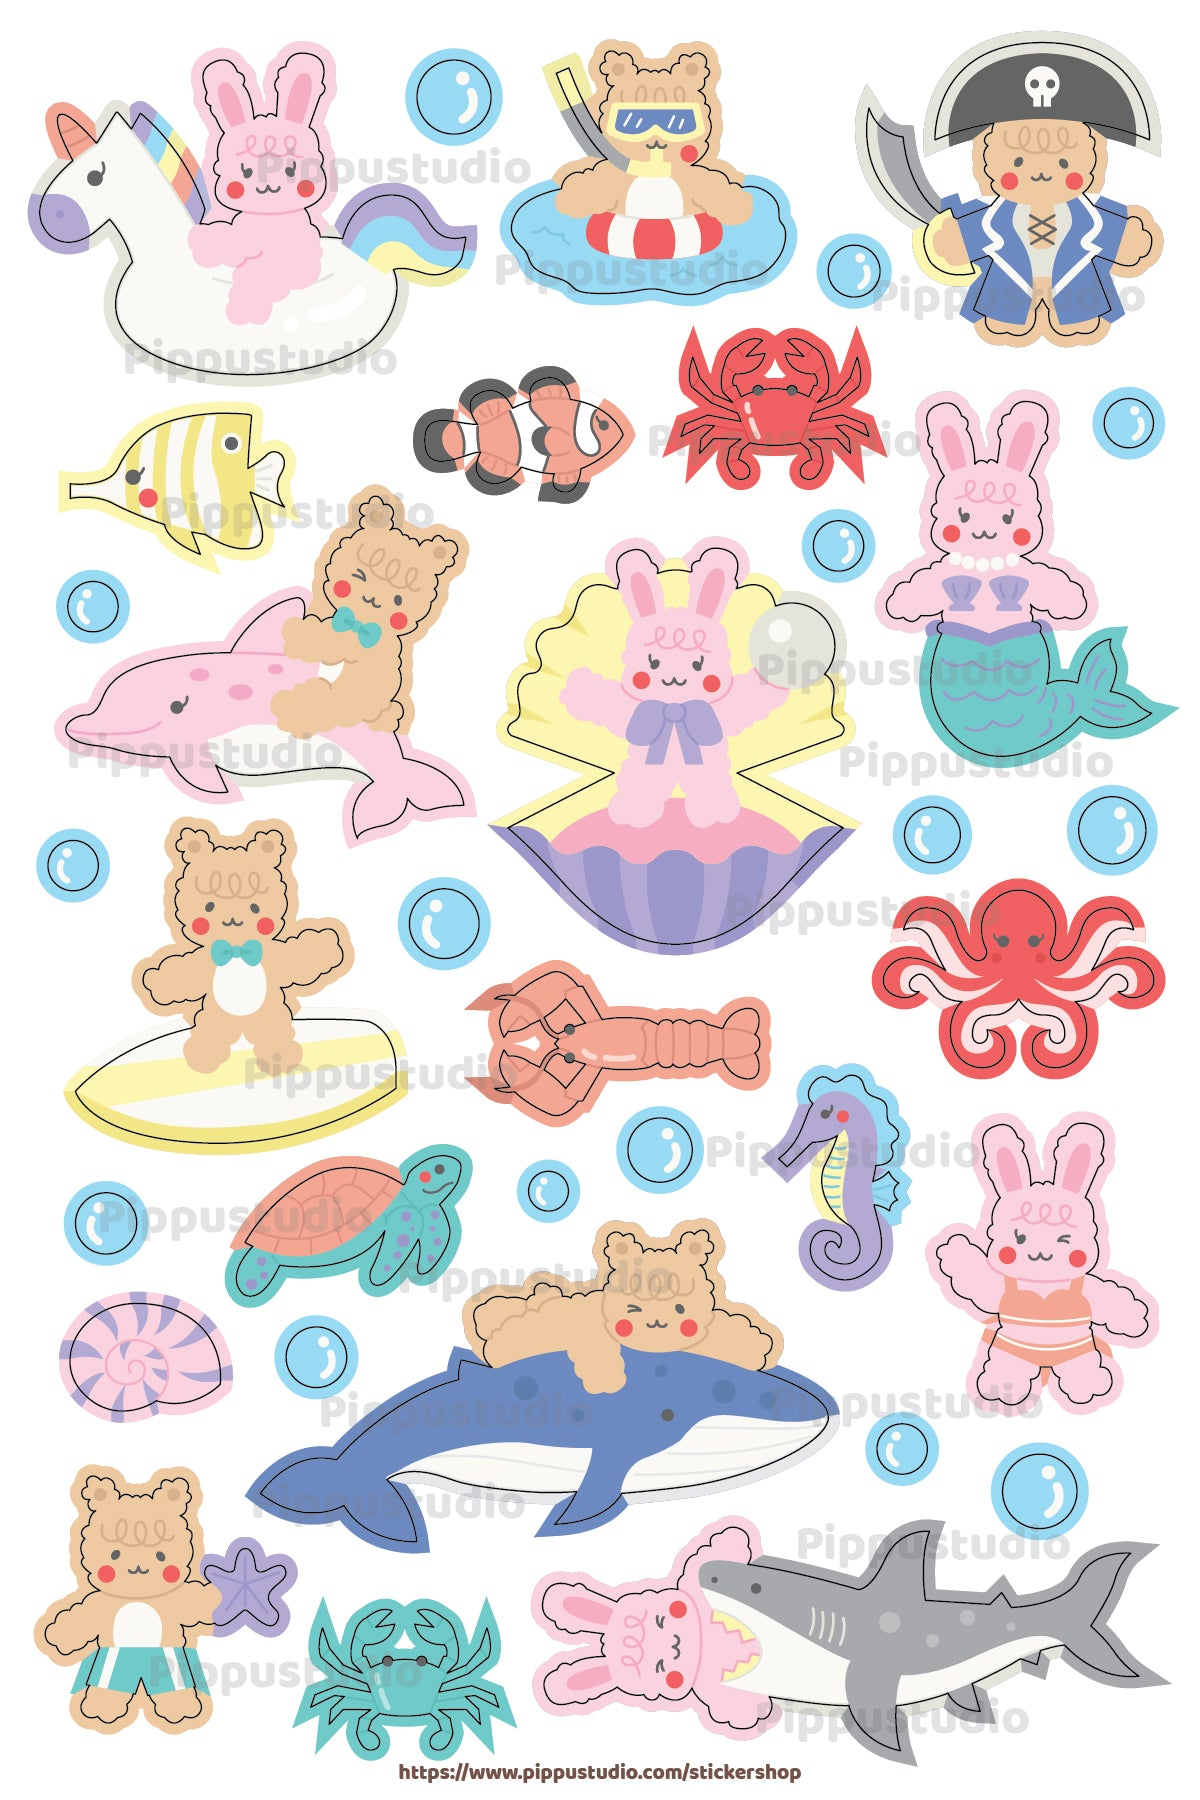 Ocean world sticker sheet